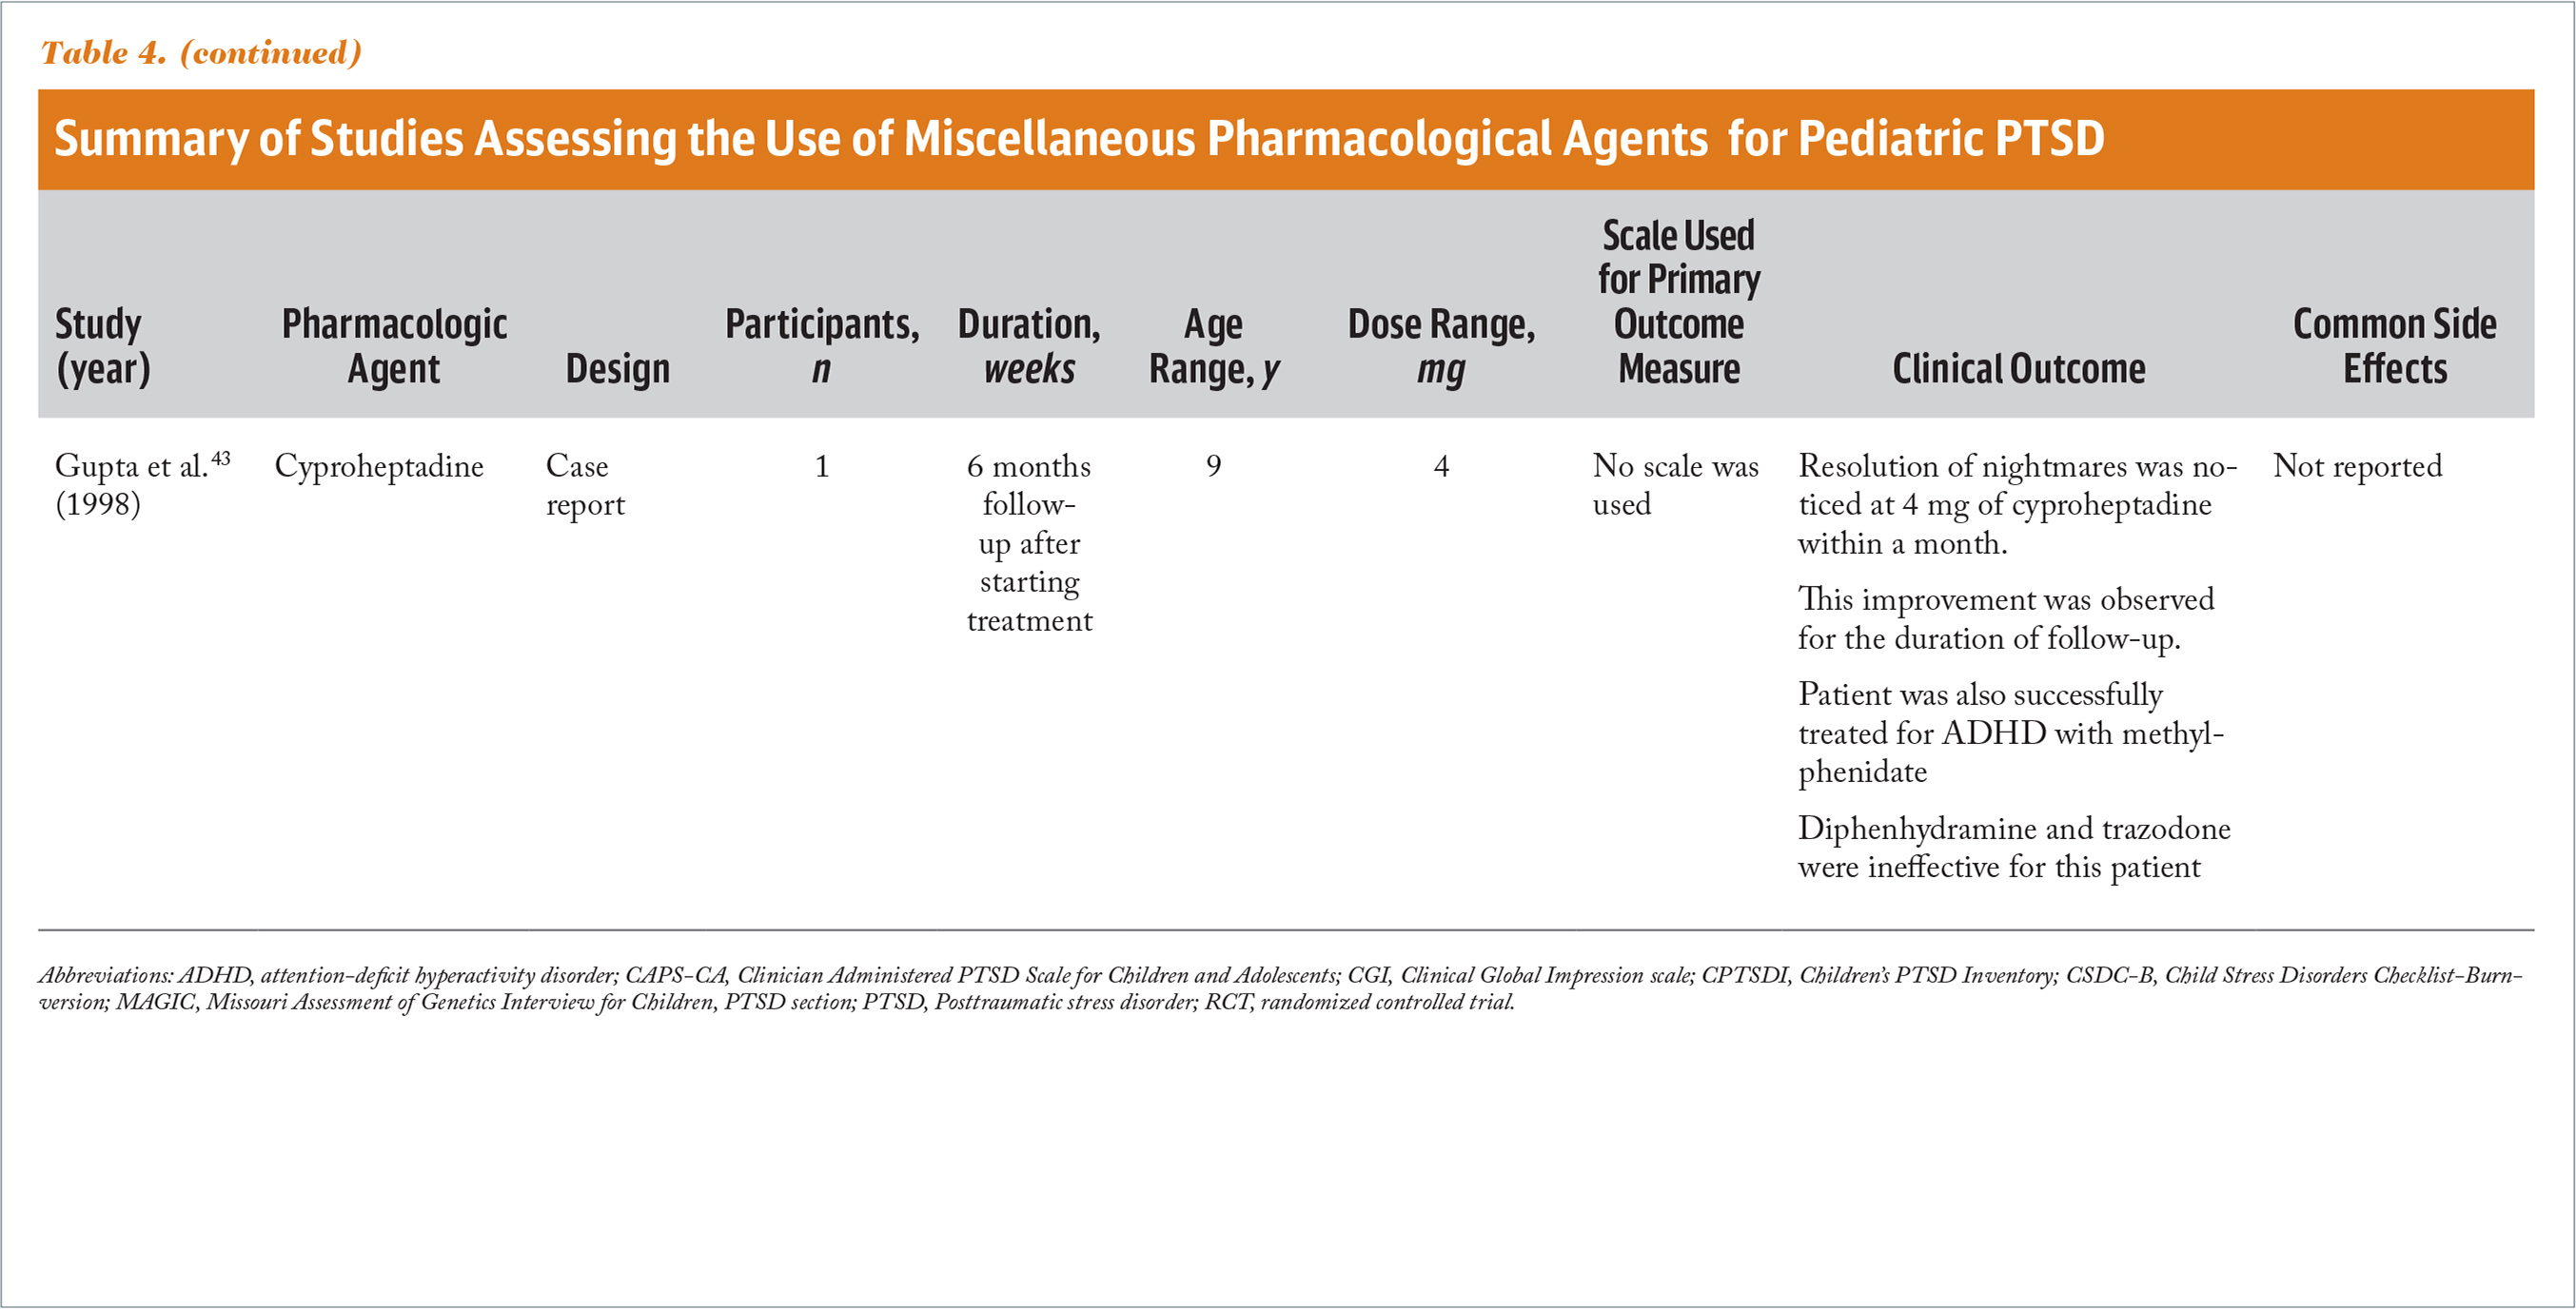 Summary of Studies Assessing the Use of Miscellaneous Pharmacological Agents for Pediatric PTSD